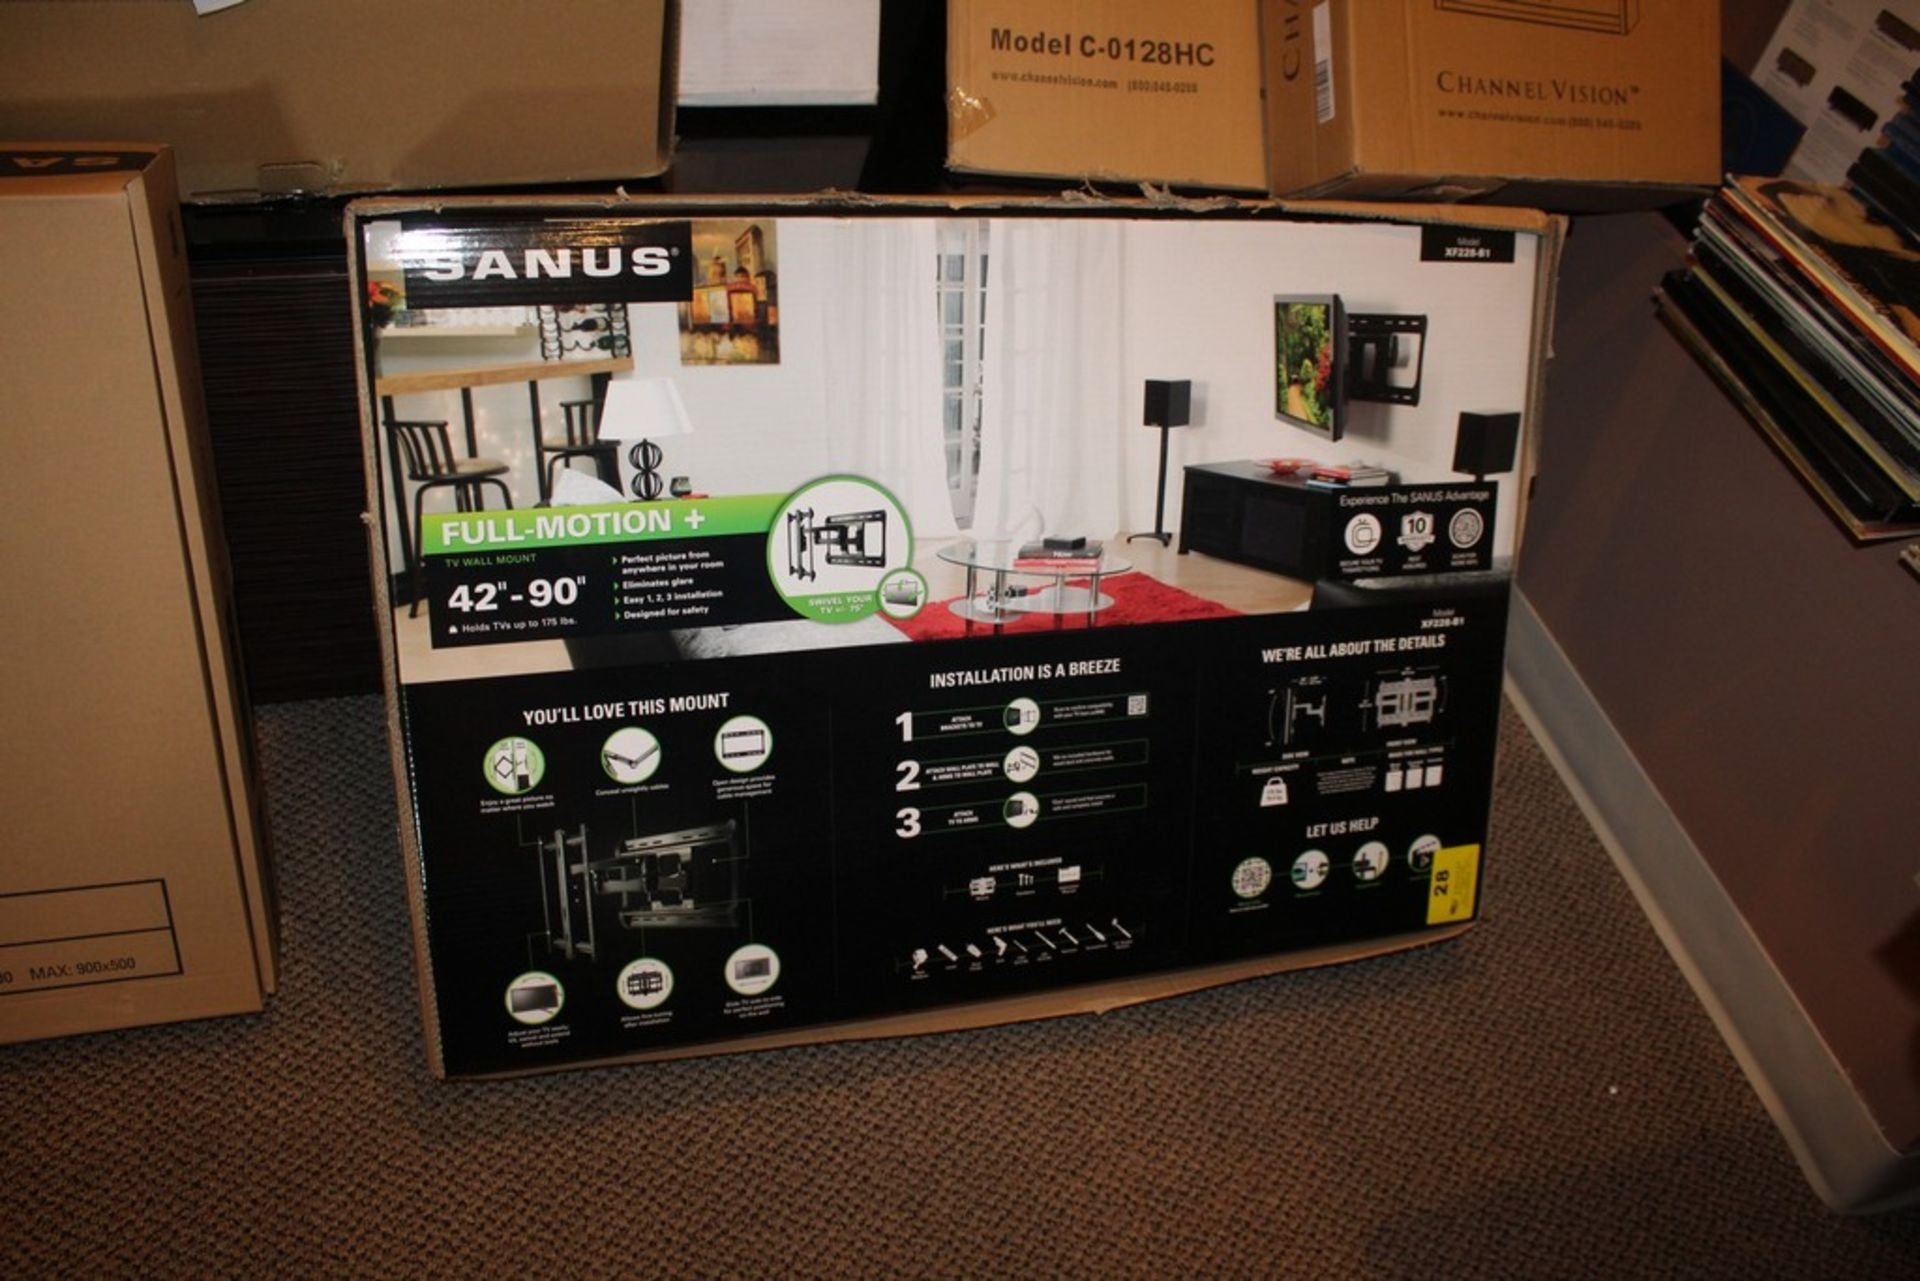 "Lot 28 - SANUS MODEL XF228-B1 FULL MOTION TV WALL MOUNT, 42"" TO 90"", UP TO 175LBS."